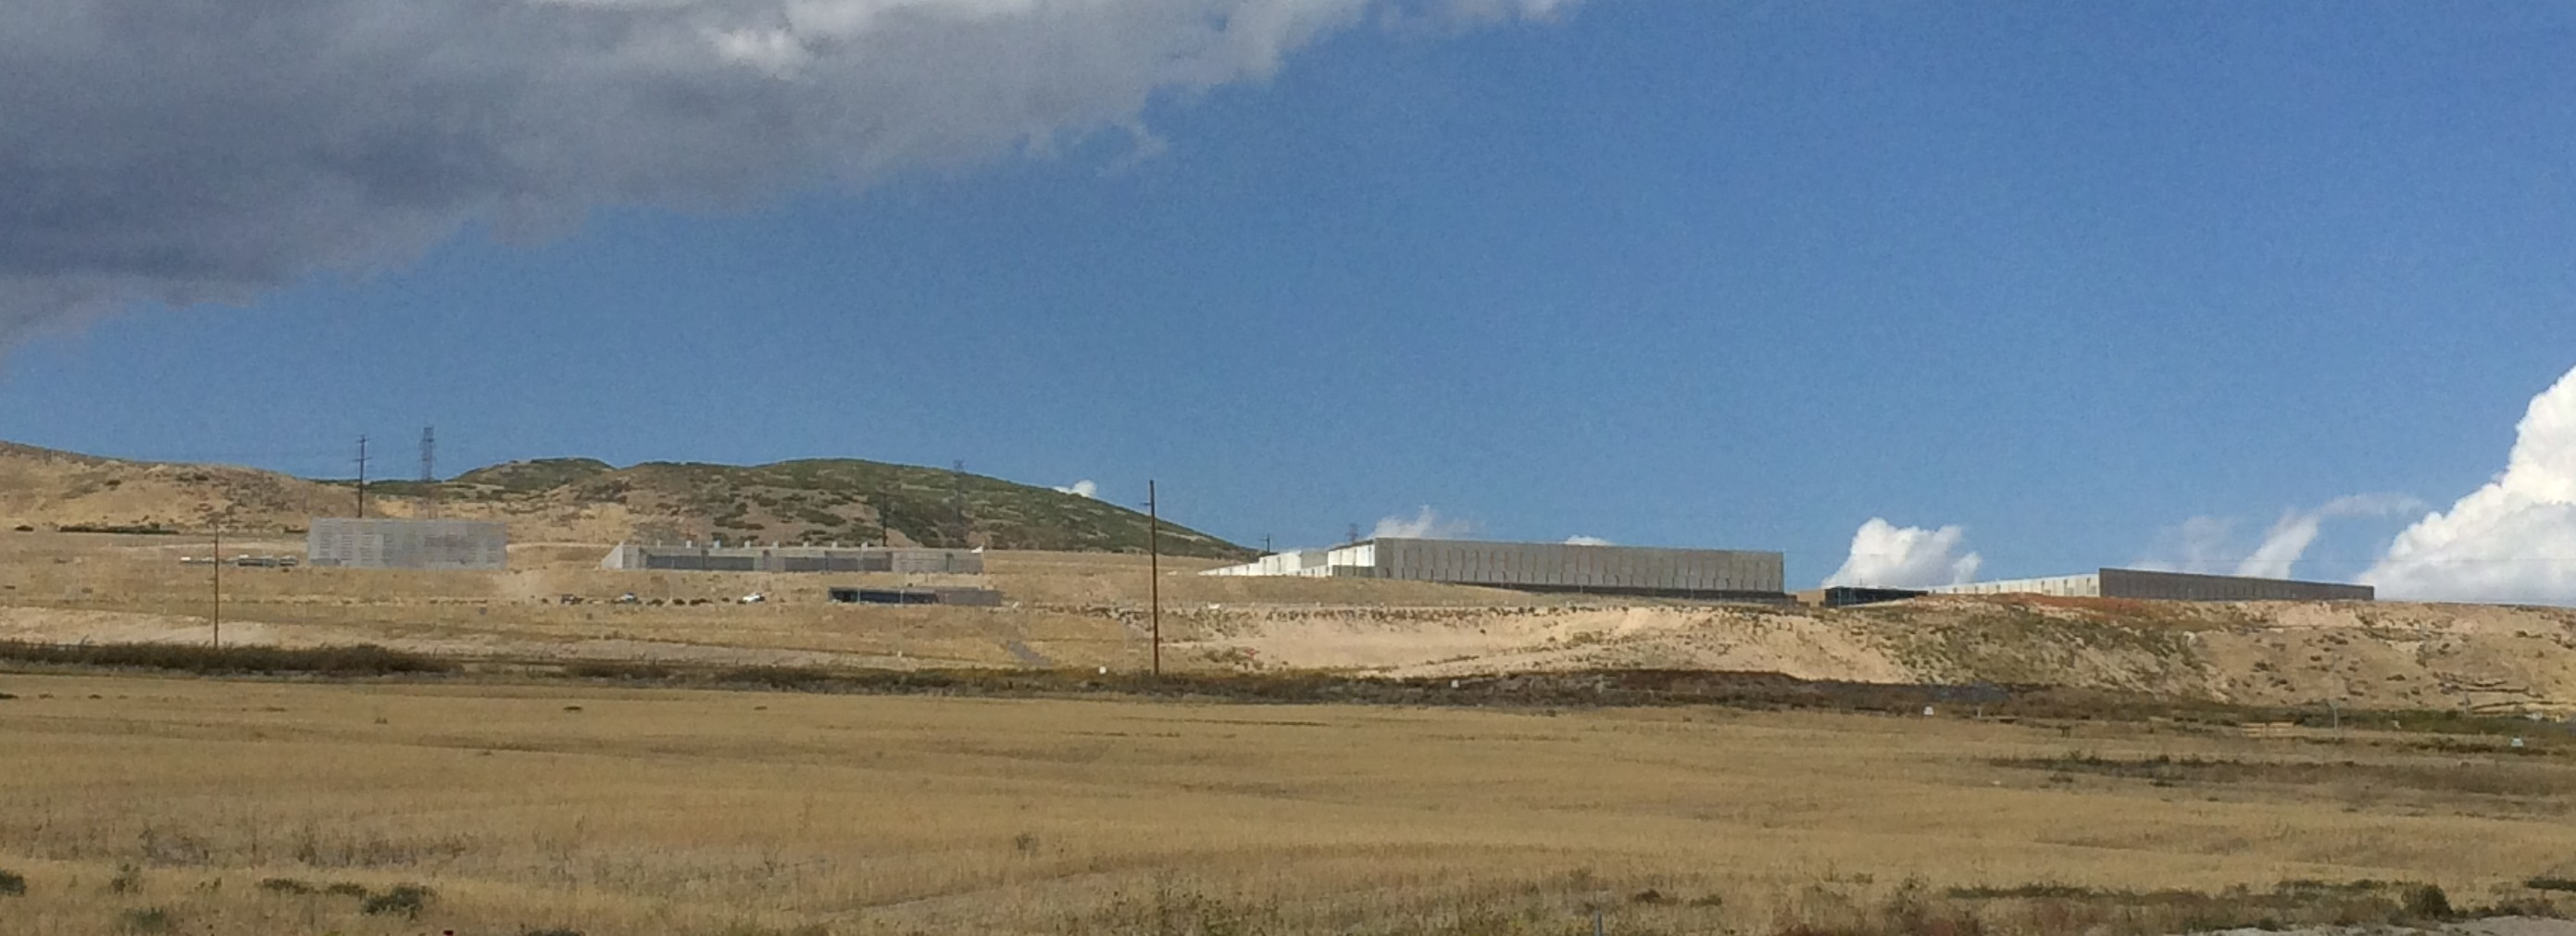 NSA Data Center, a few miles from my office in Lehi, UT